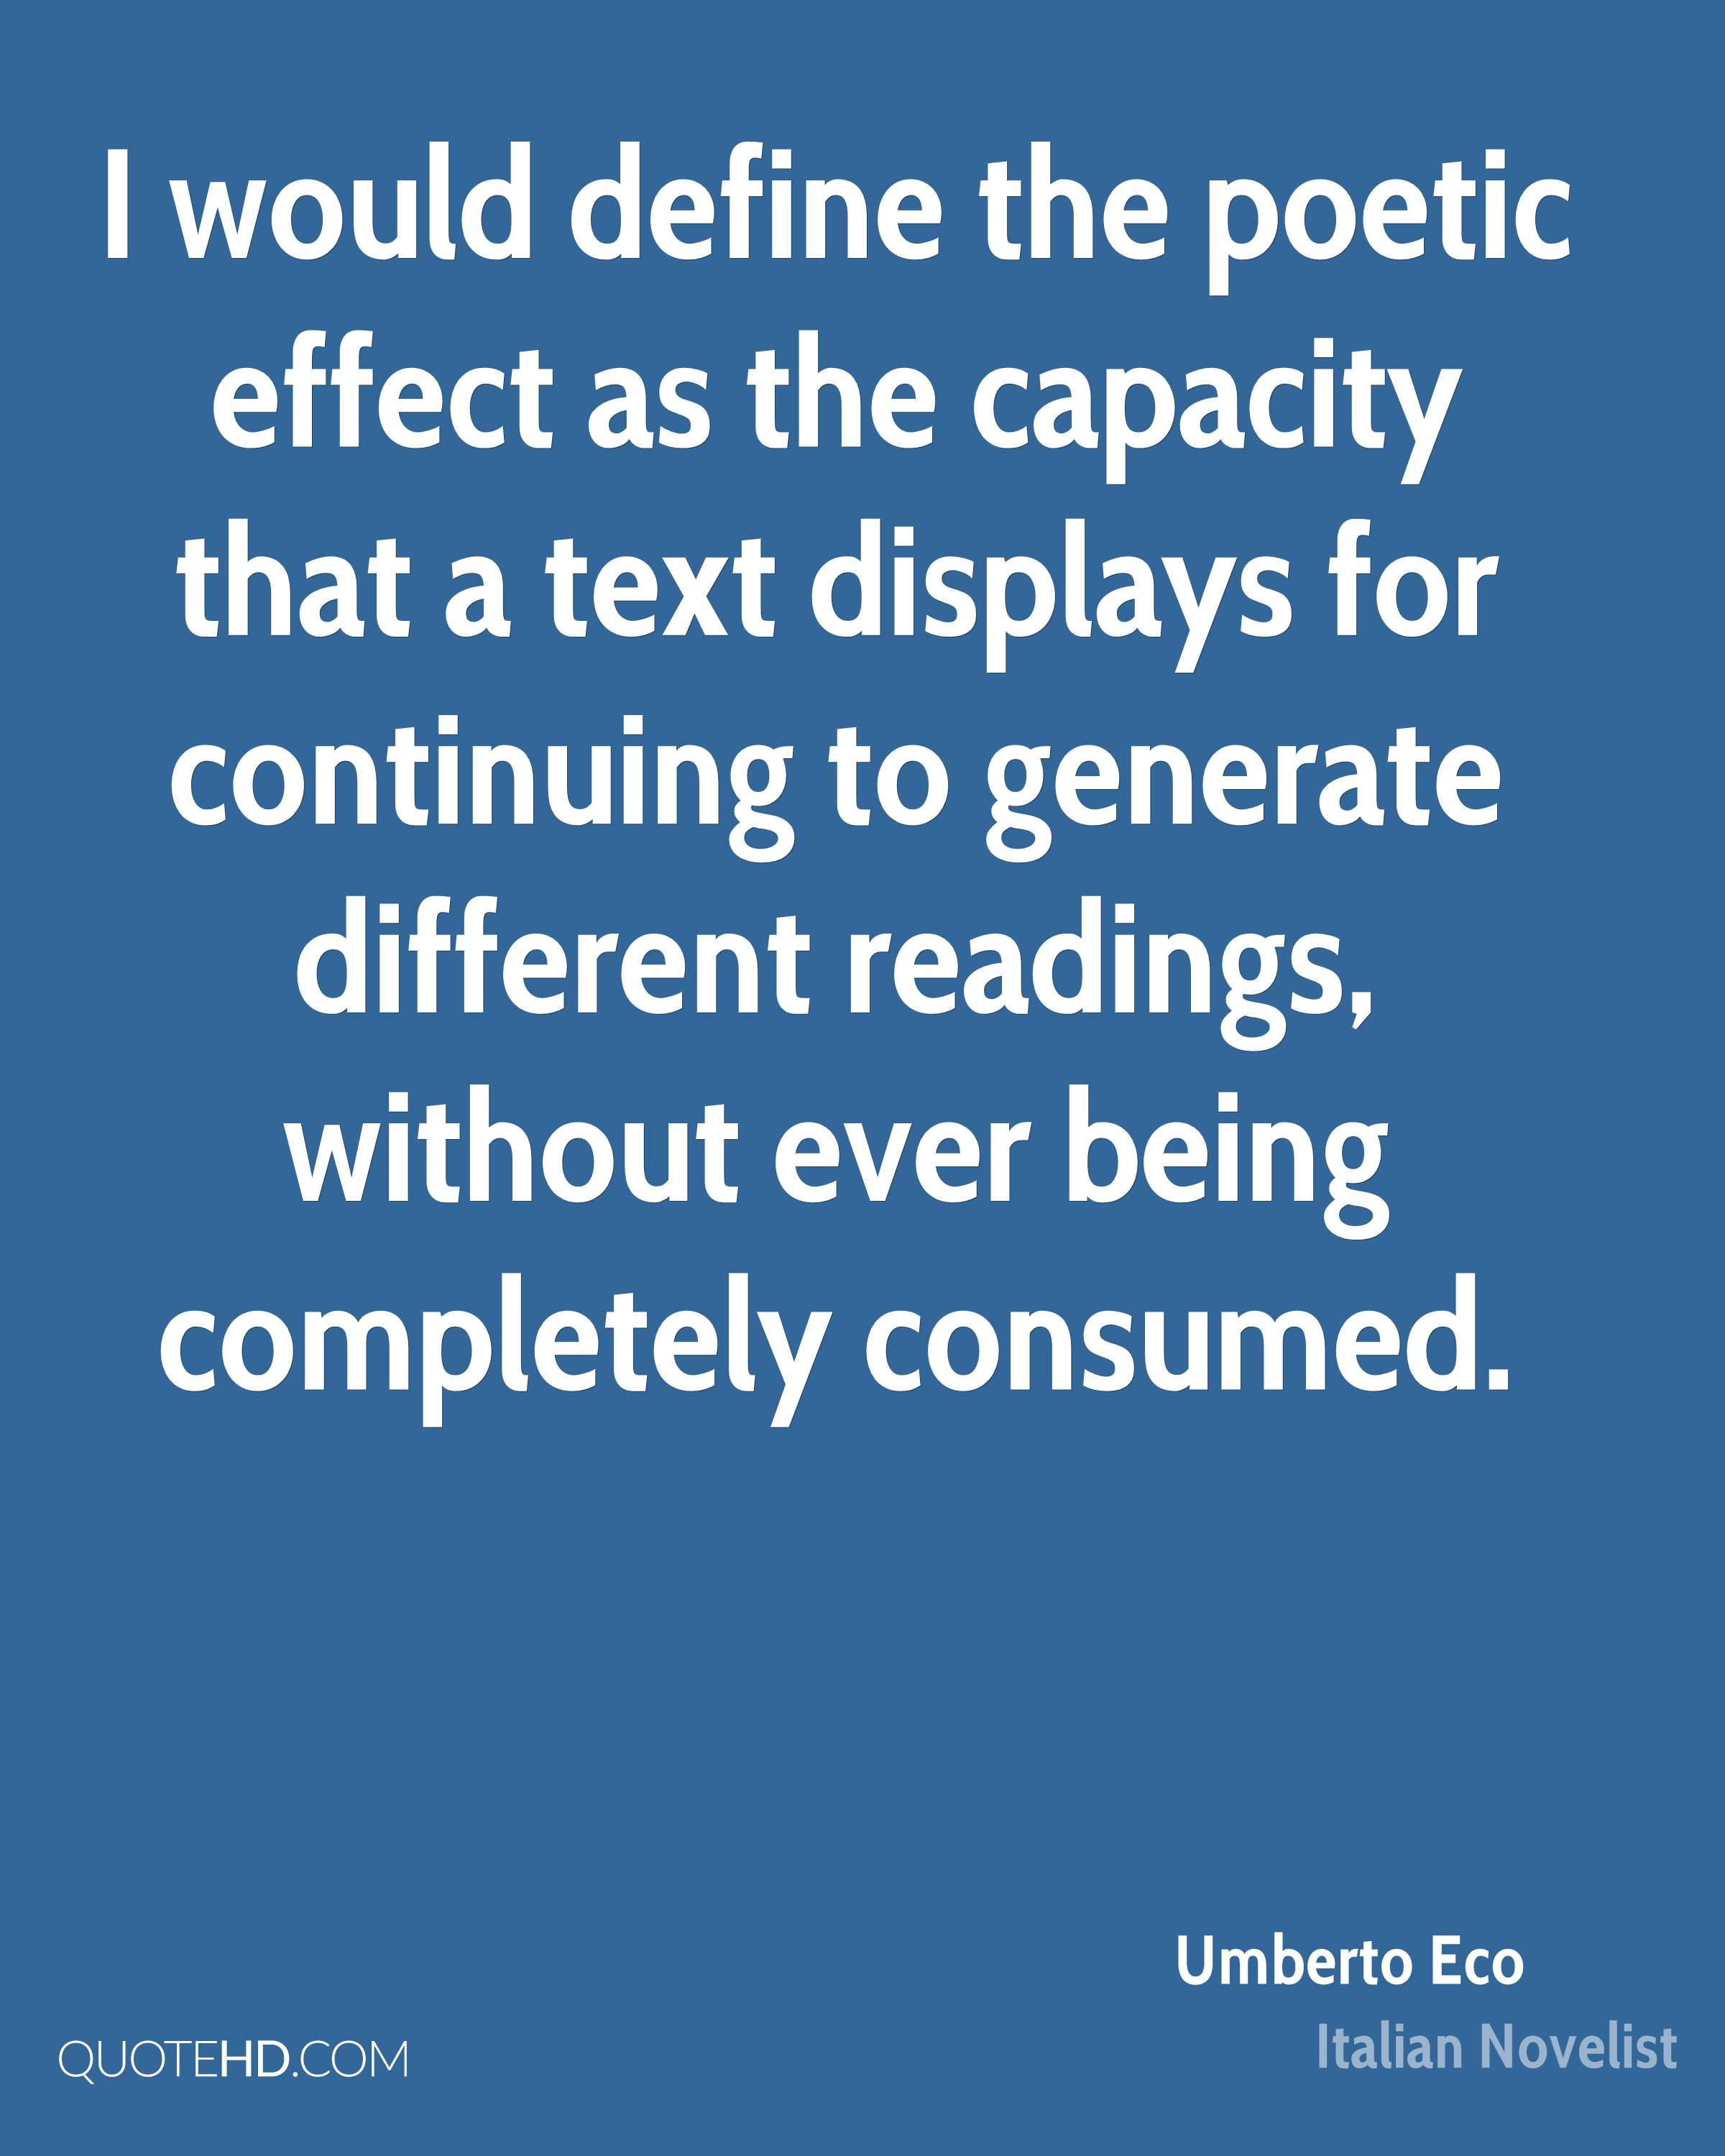 I would define the poetic effect as the capacity that a text displays for continuing to generate different readings, without ever being completely consumed.